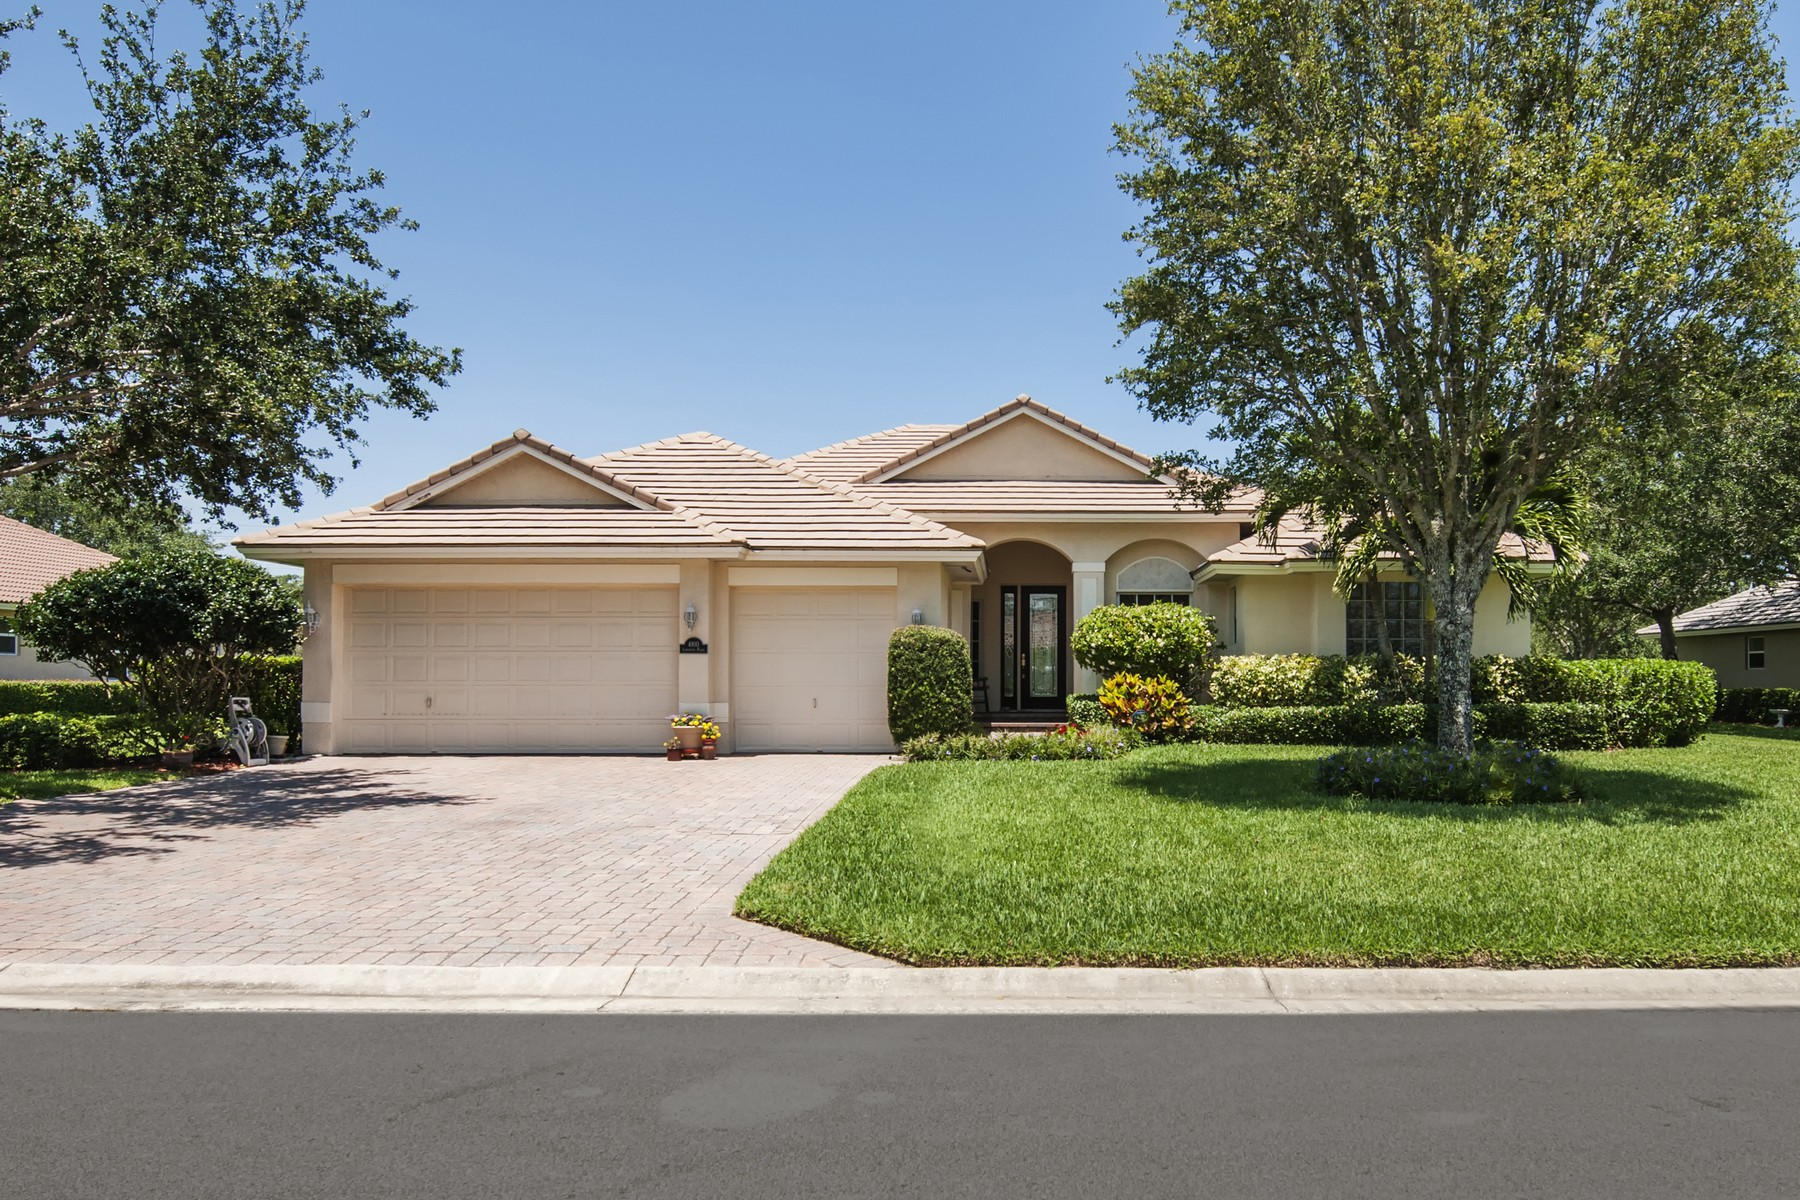 Single Family Home for Sale at Doctor's Row Pool Home in Prestigious Gated Community 4810 Lafayette Place Vero Beach, Florida 32966 United States